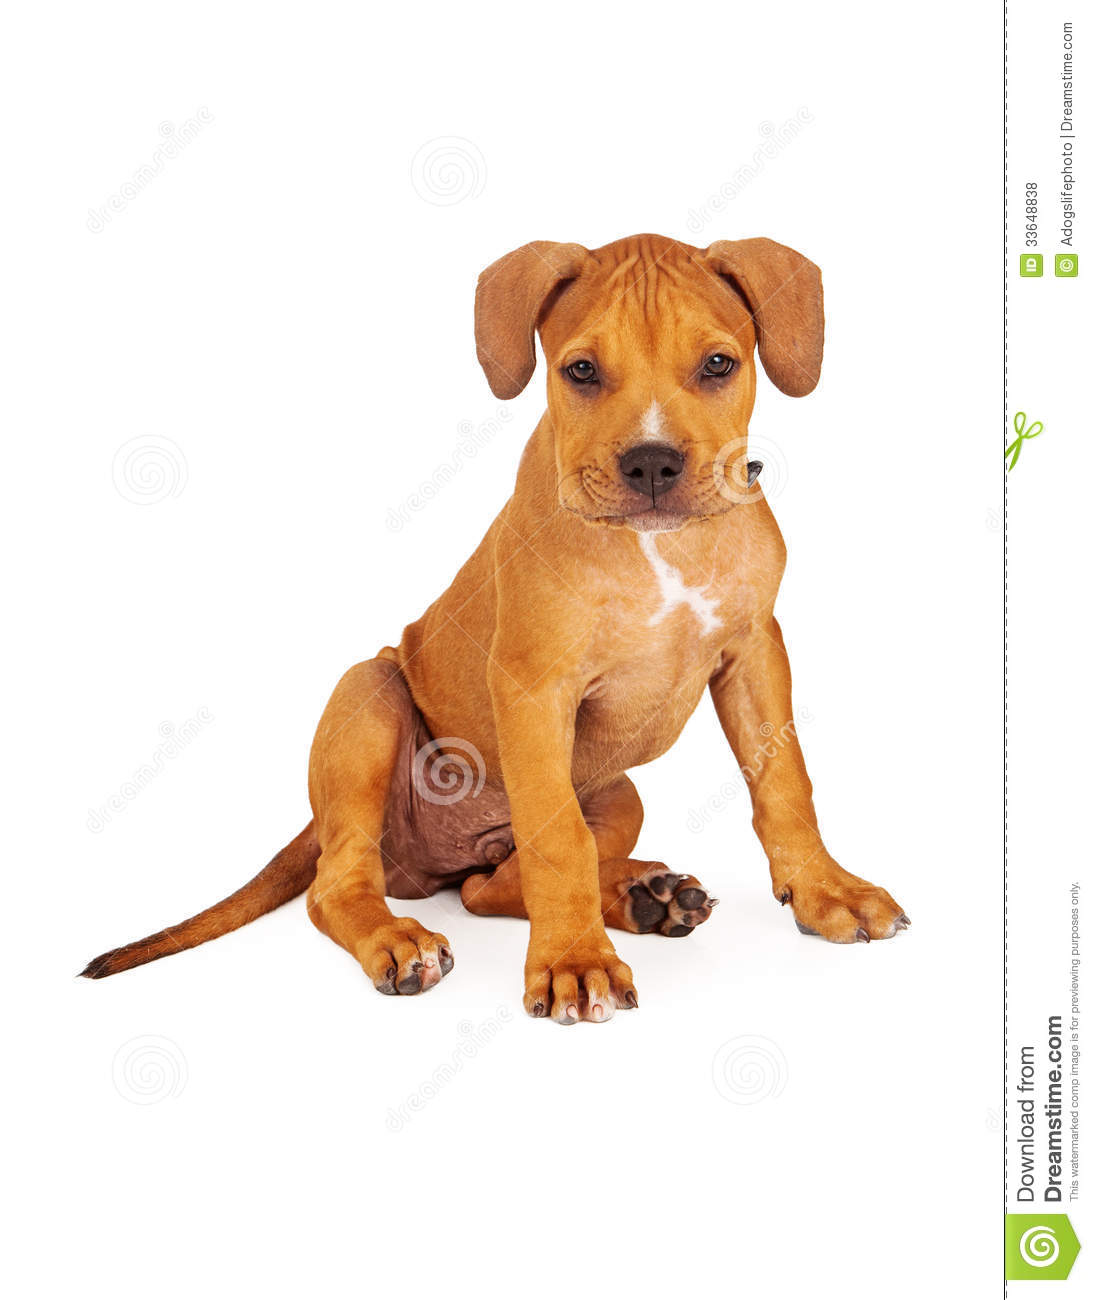 Pit Bull Puppy Fawn Color stock photo  Image of young - 33648838